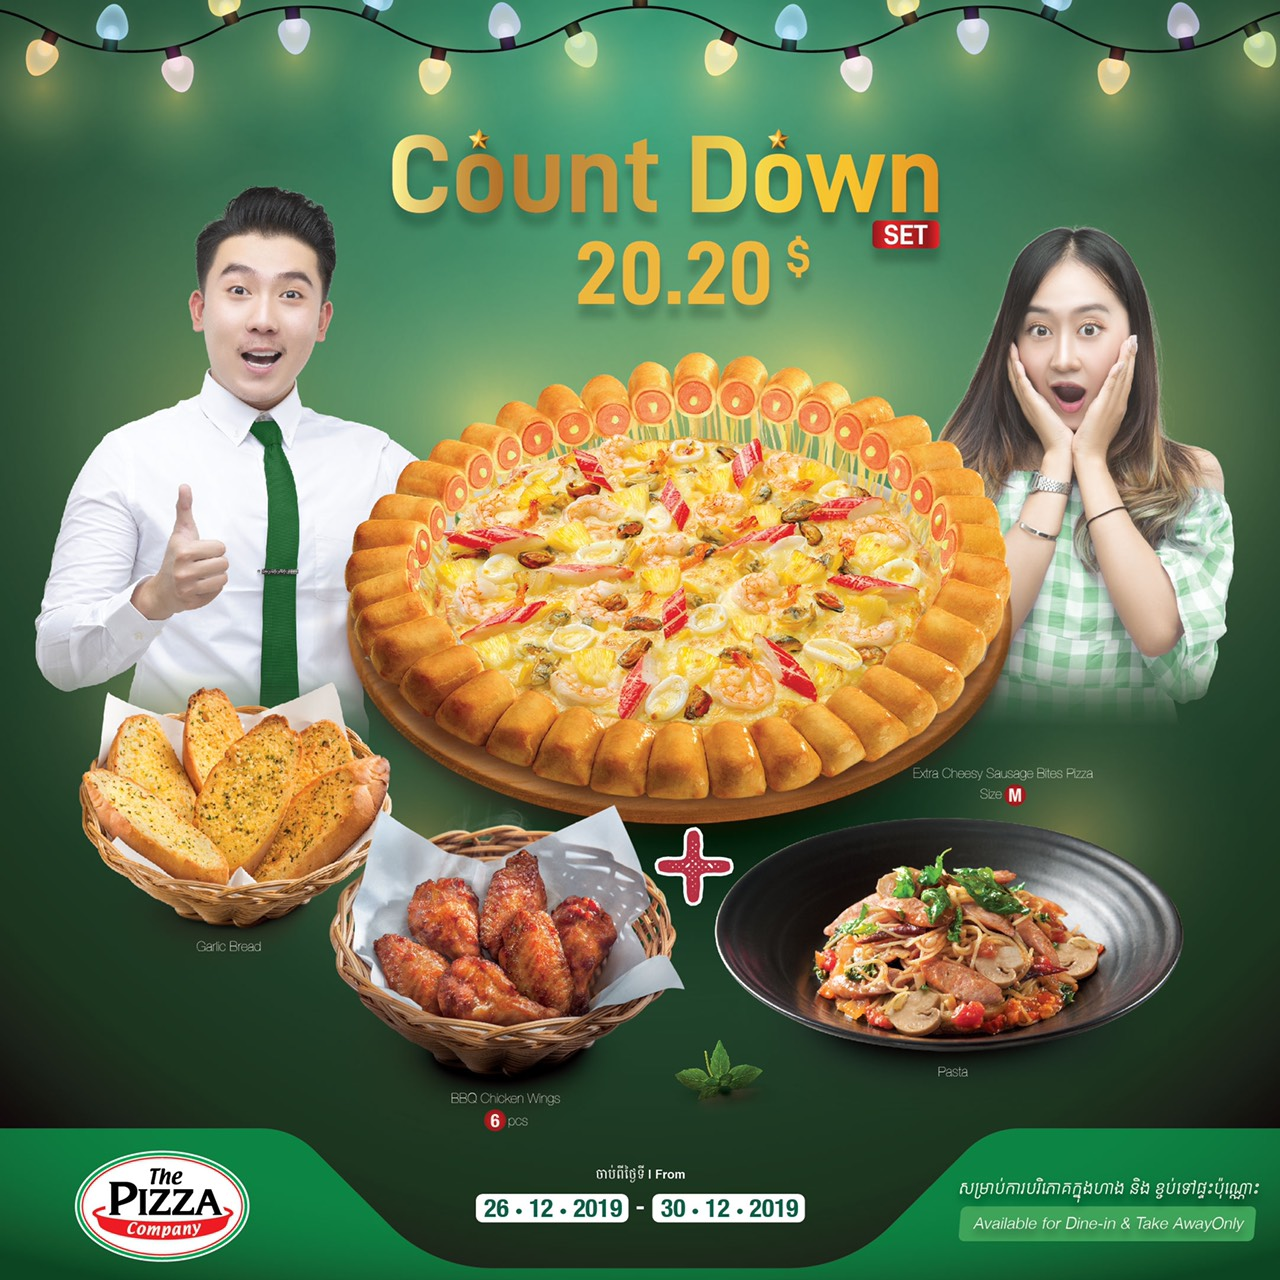 The Pizza Company-Count down